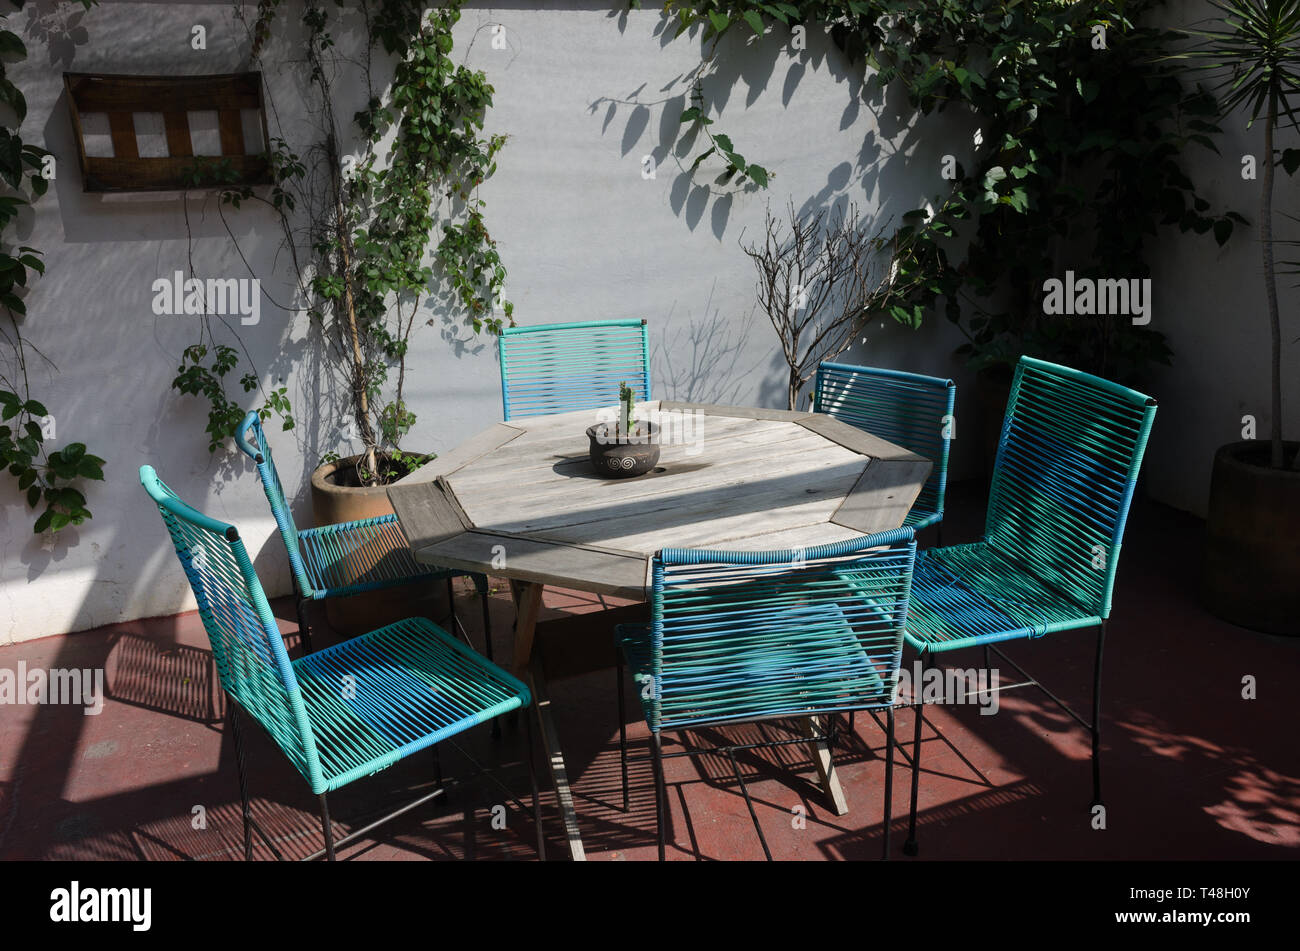 Outdoor Dining Table On A Mexican Patio Stock Photo 243592747 Alamy